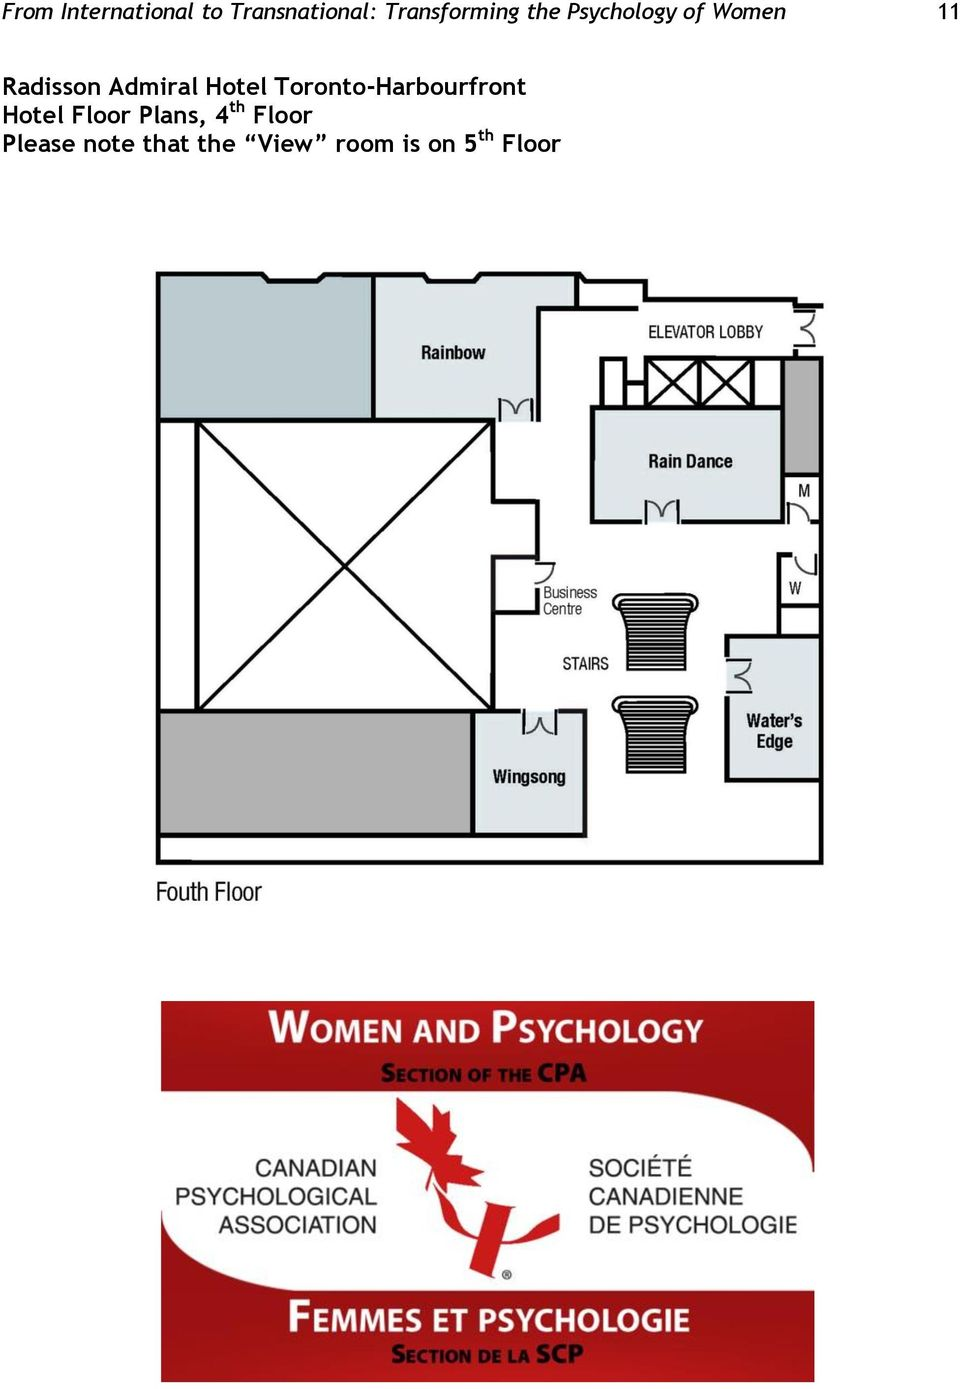 Toronto-Harbourfront Hotel Floor Plans, 4 th